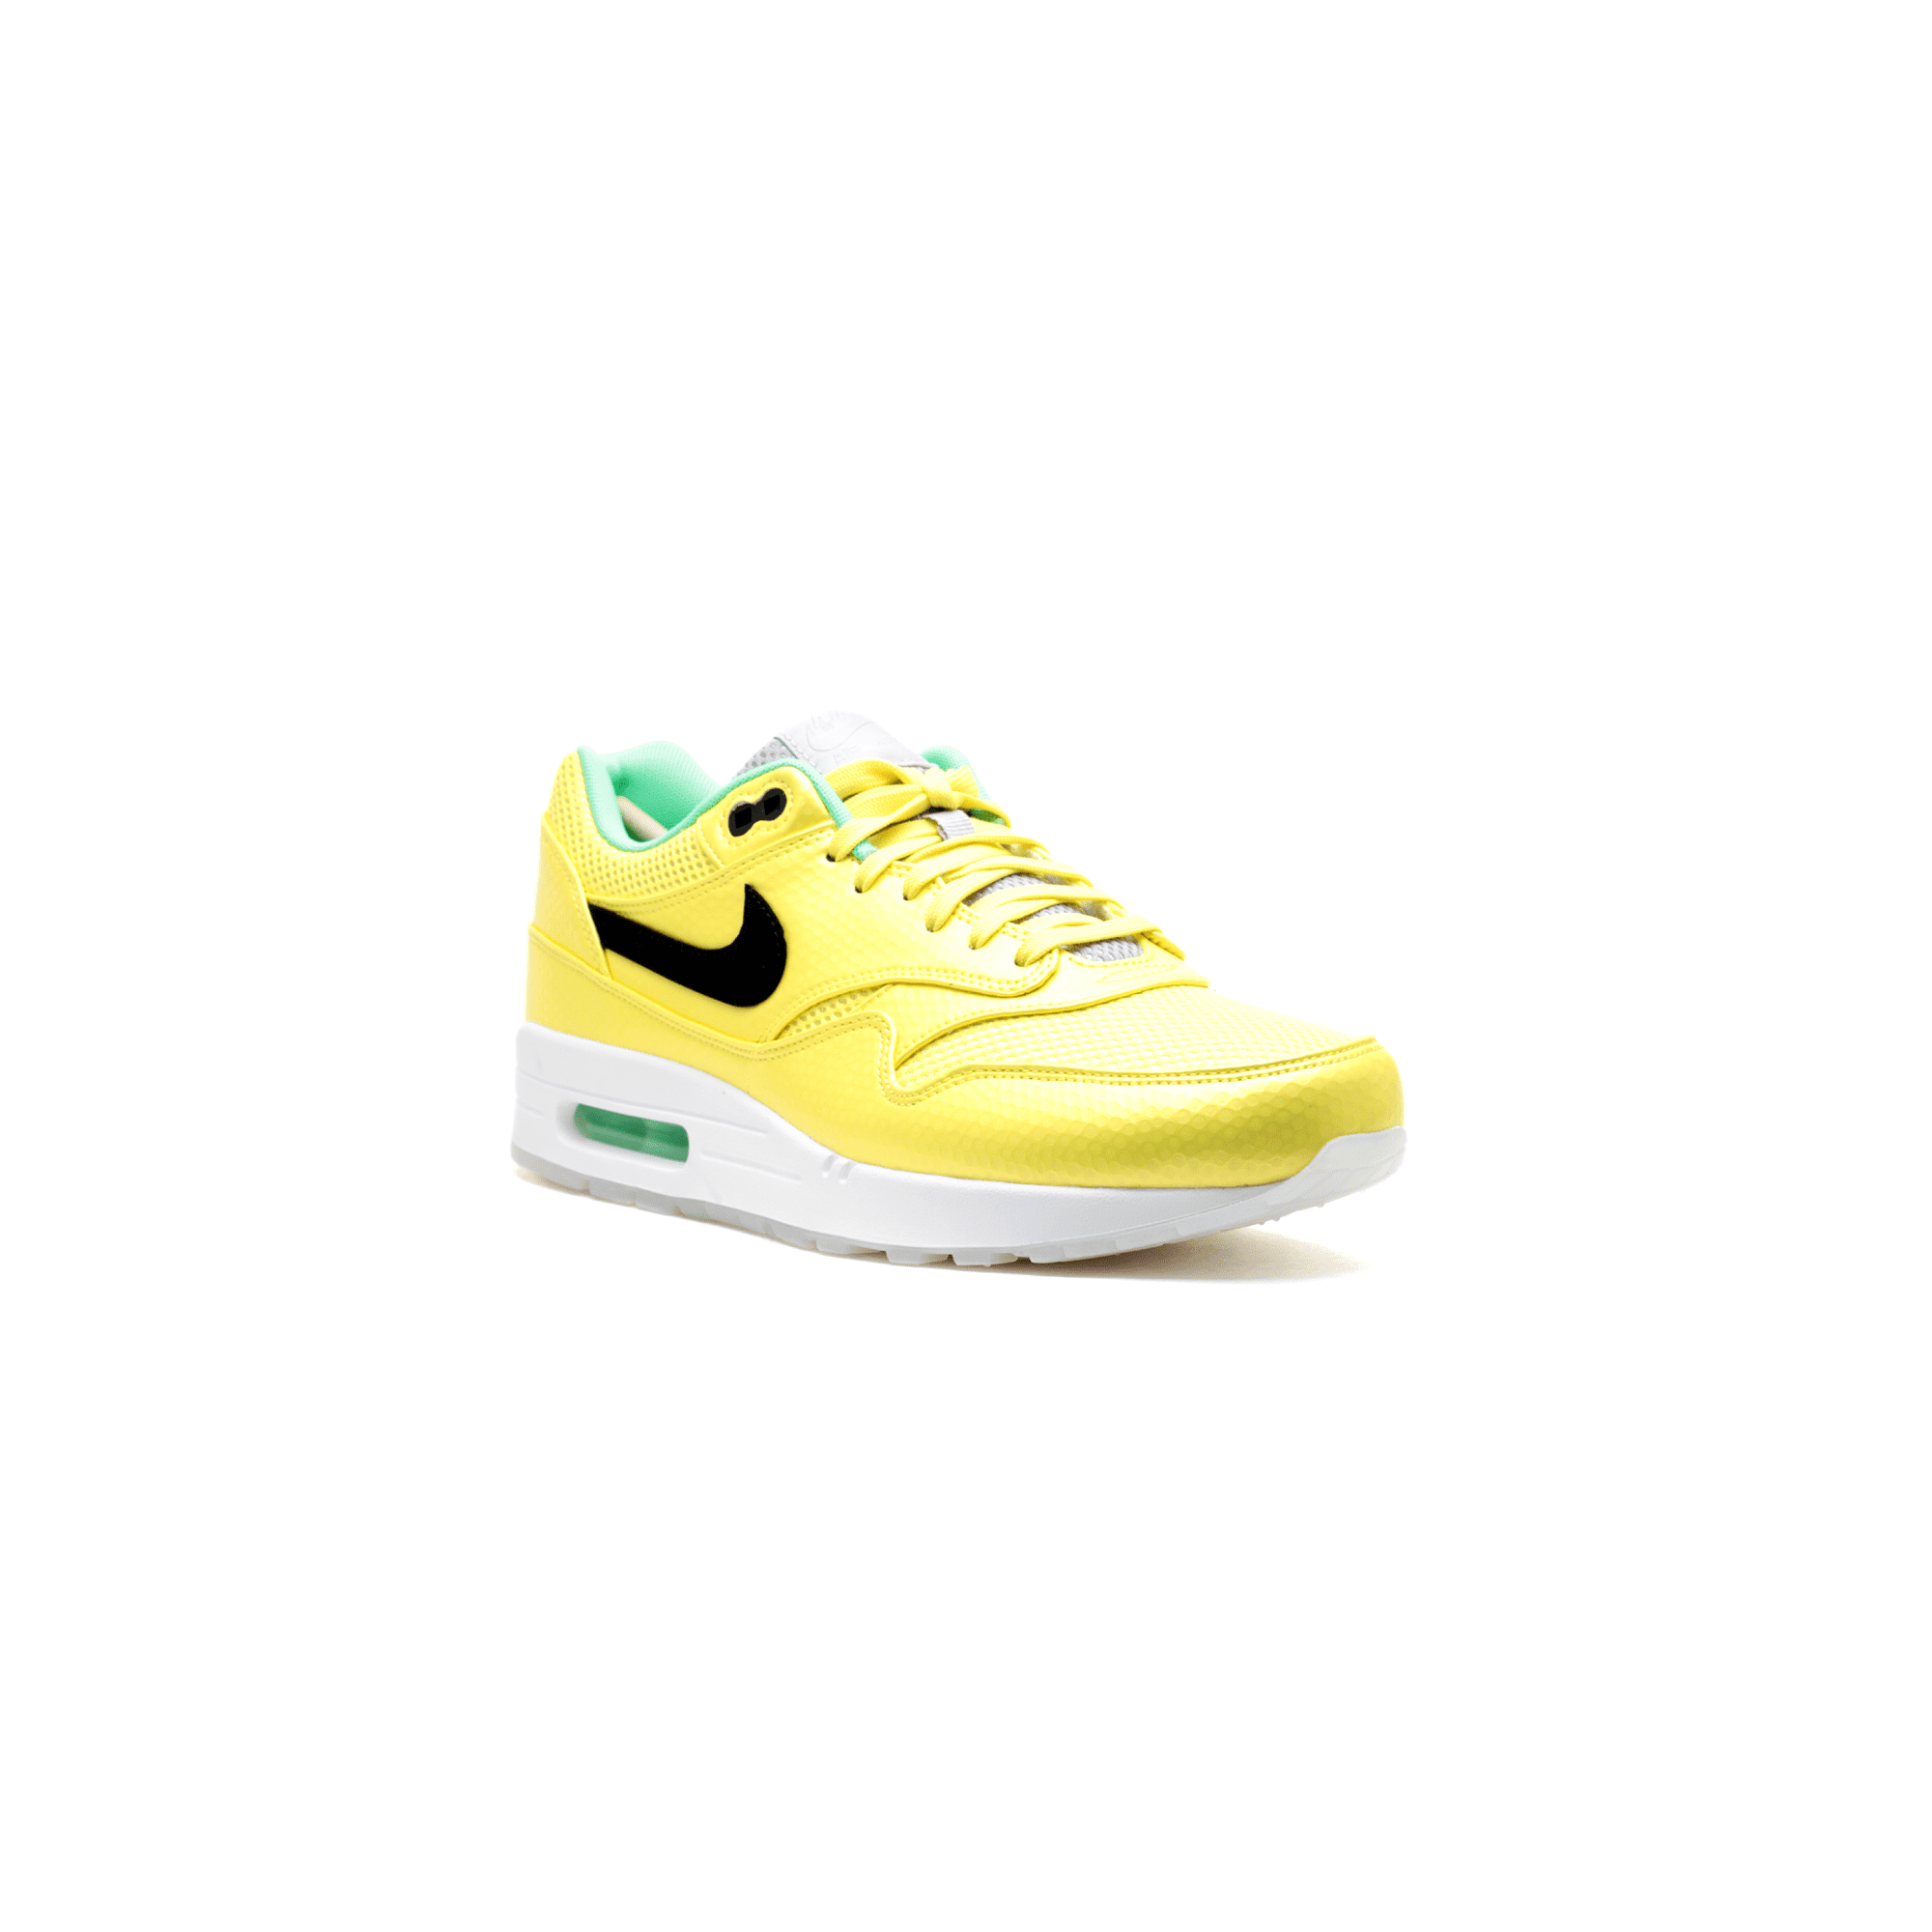 Nike Men Air Max 1 Fb Premium Qs 'Mercurial Pack' 665874 700 Size 9